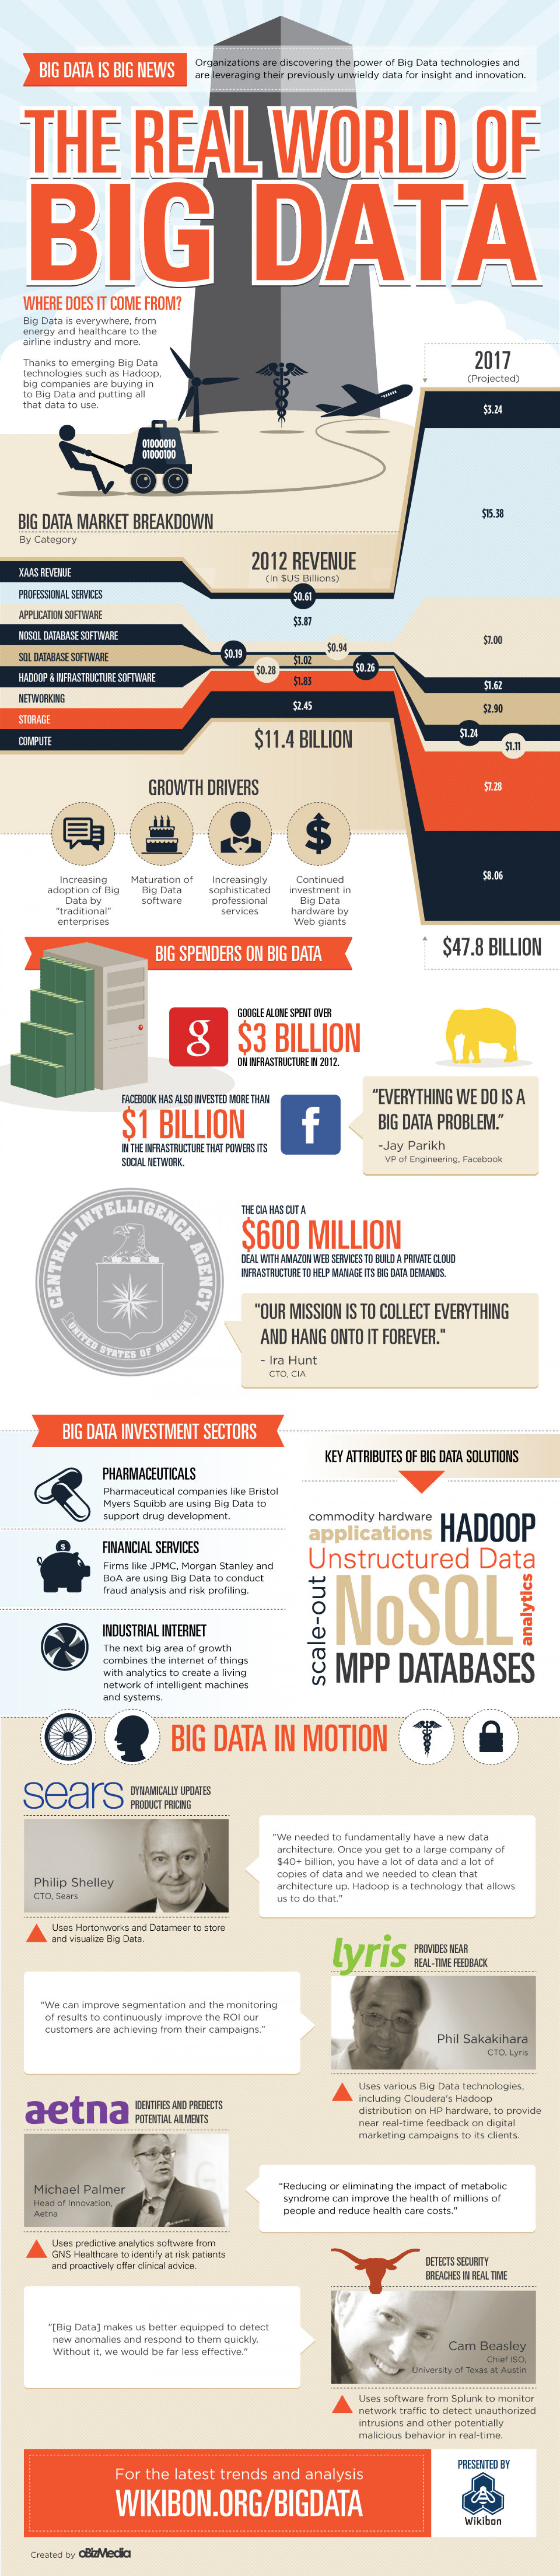 The Real World of Big Data Infographic